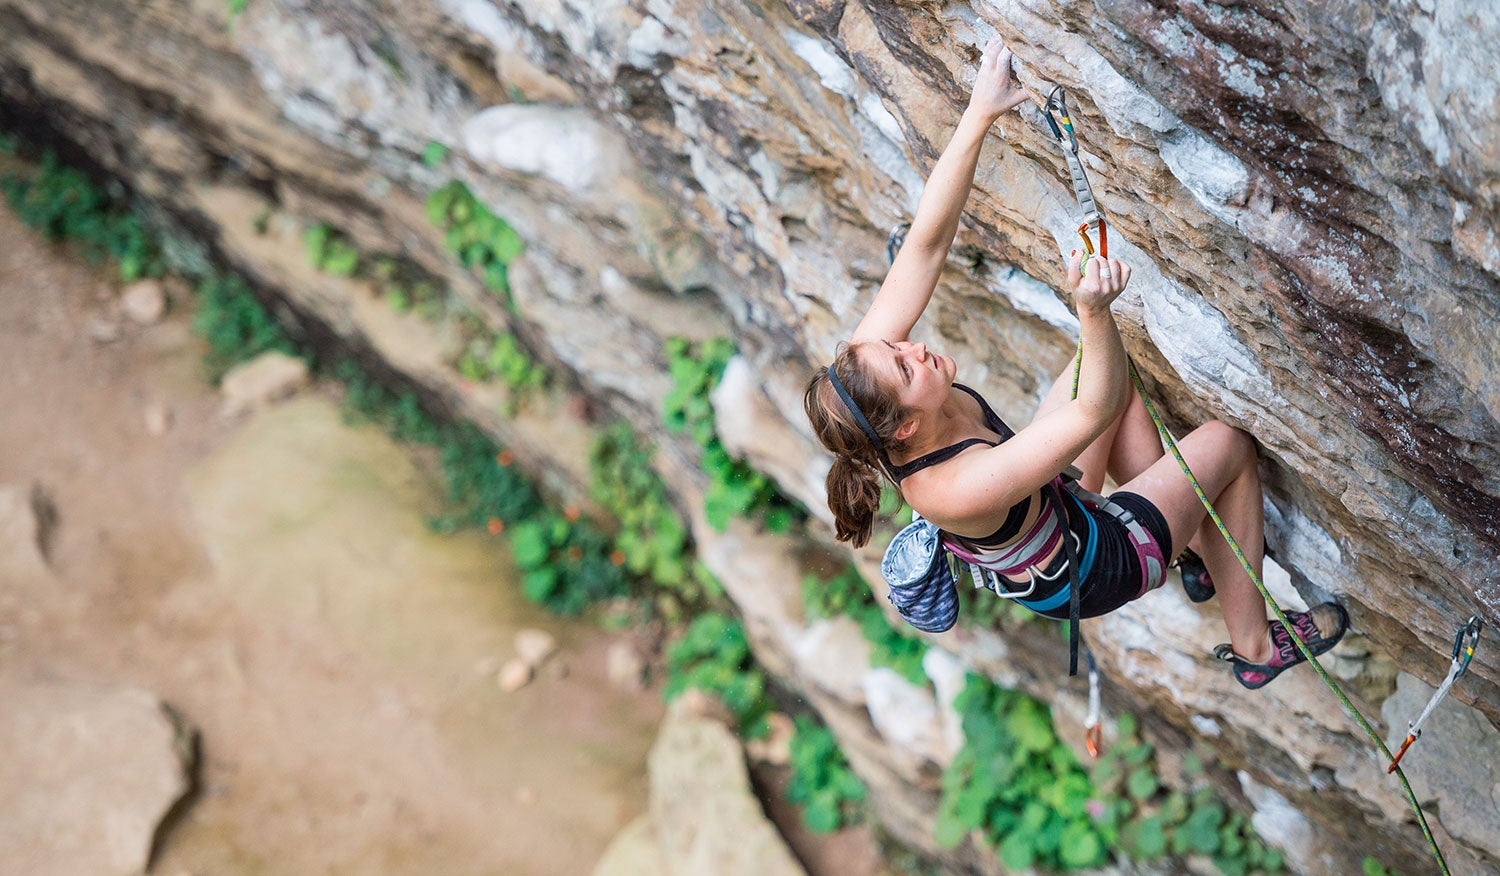 climber makes her way up an outdoor rock wall in the daytime